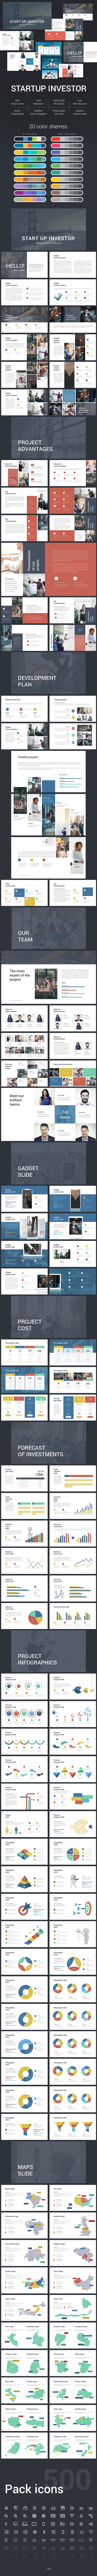 Startup Investor Pitch Deck Keynote Template - Business Keynote Templates